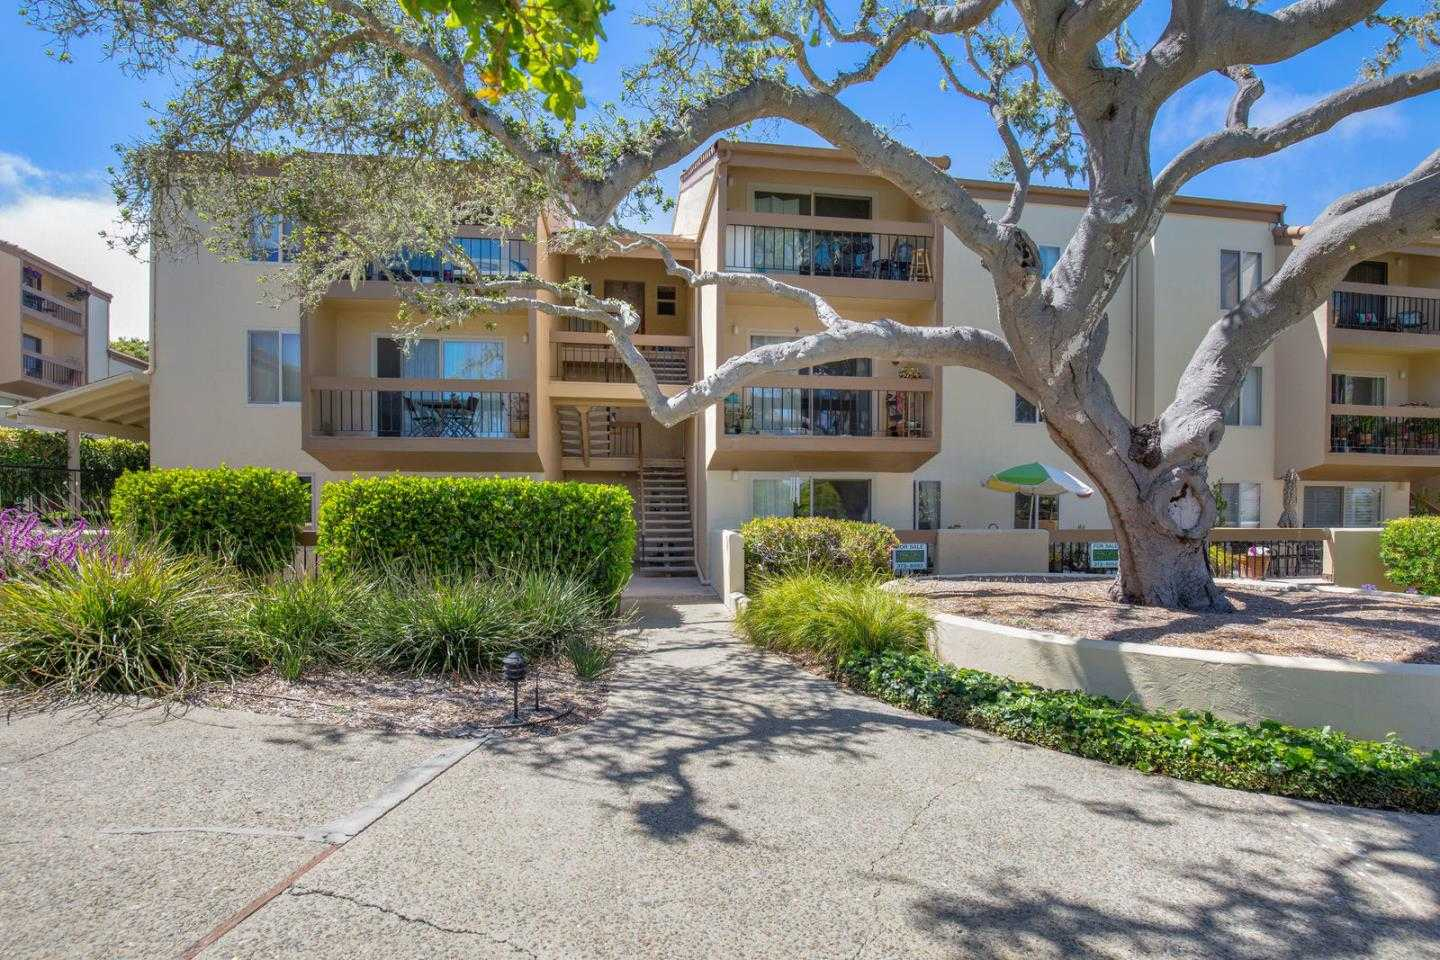 $458,000 - 2Br/1Ba -  for Sale in Monterey